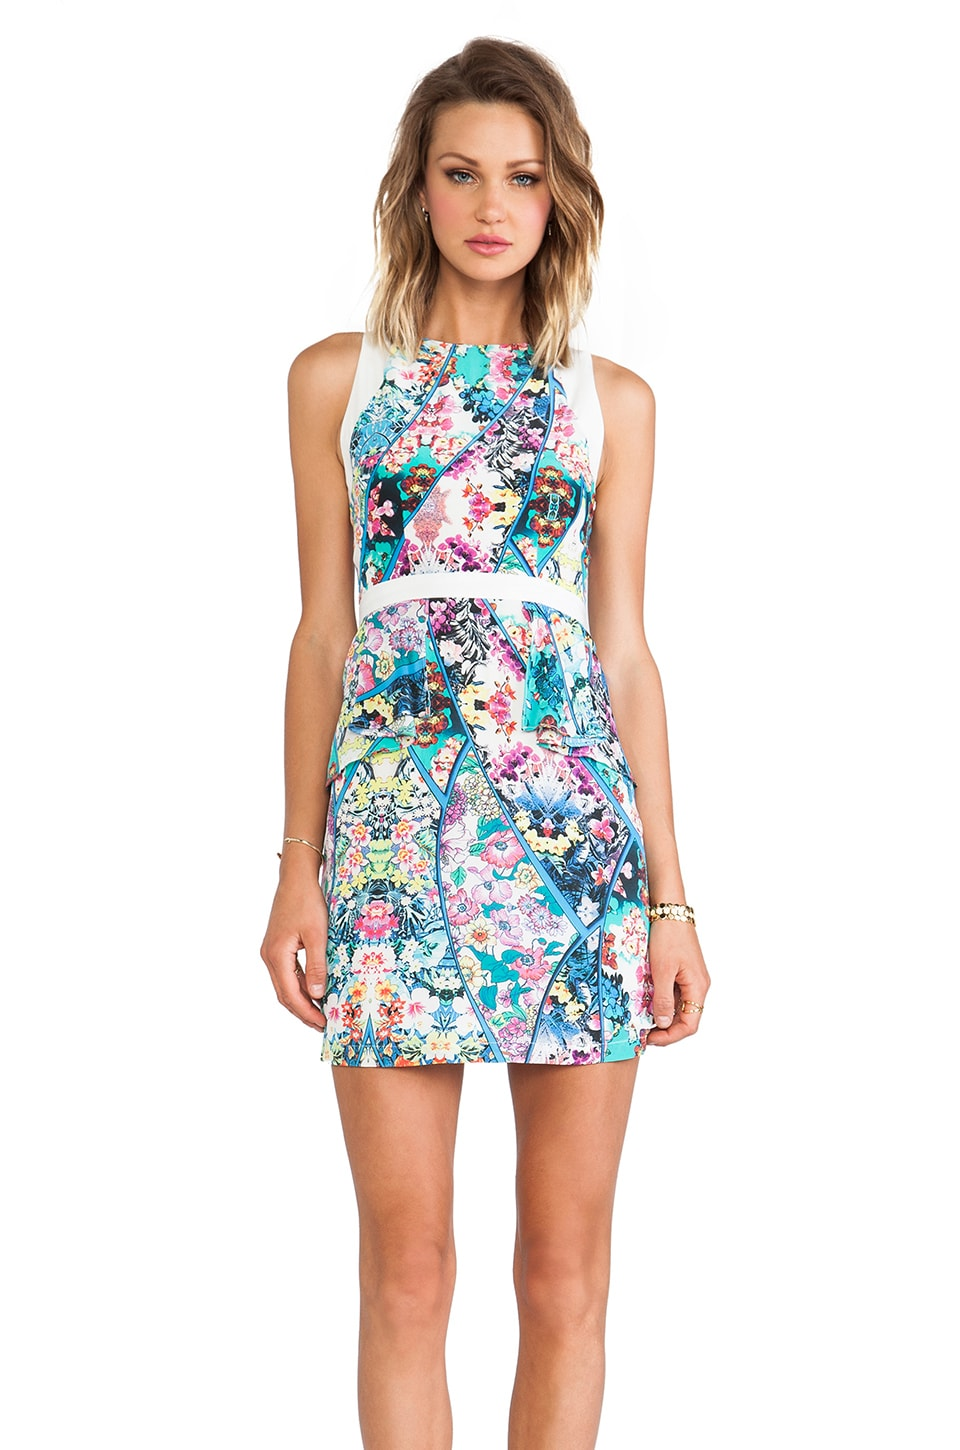 Yumi Kim Chrissy Dress in Aquamarine Kaleidoscope